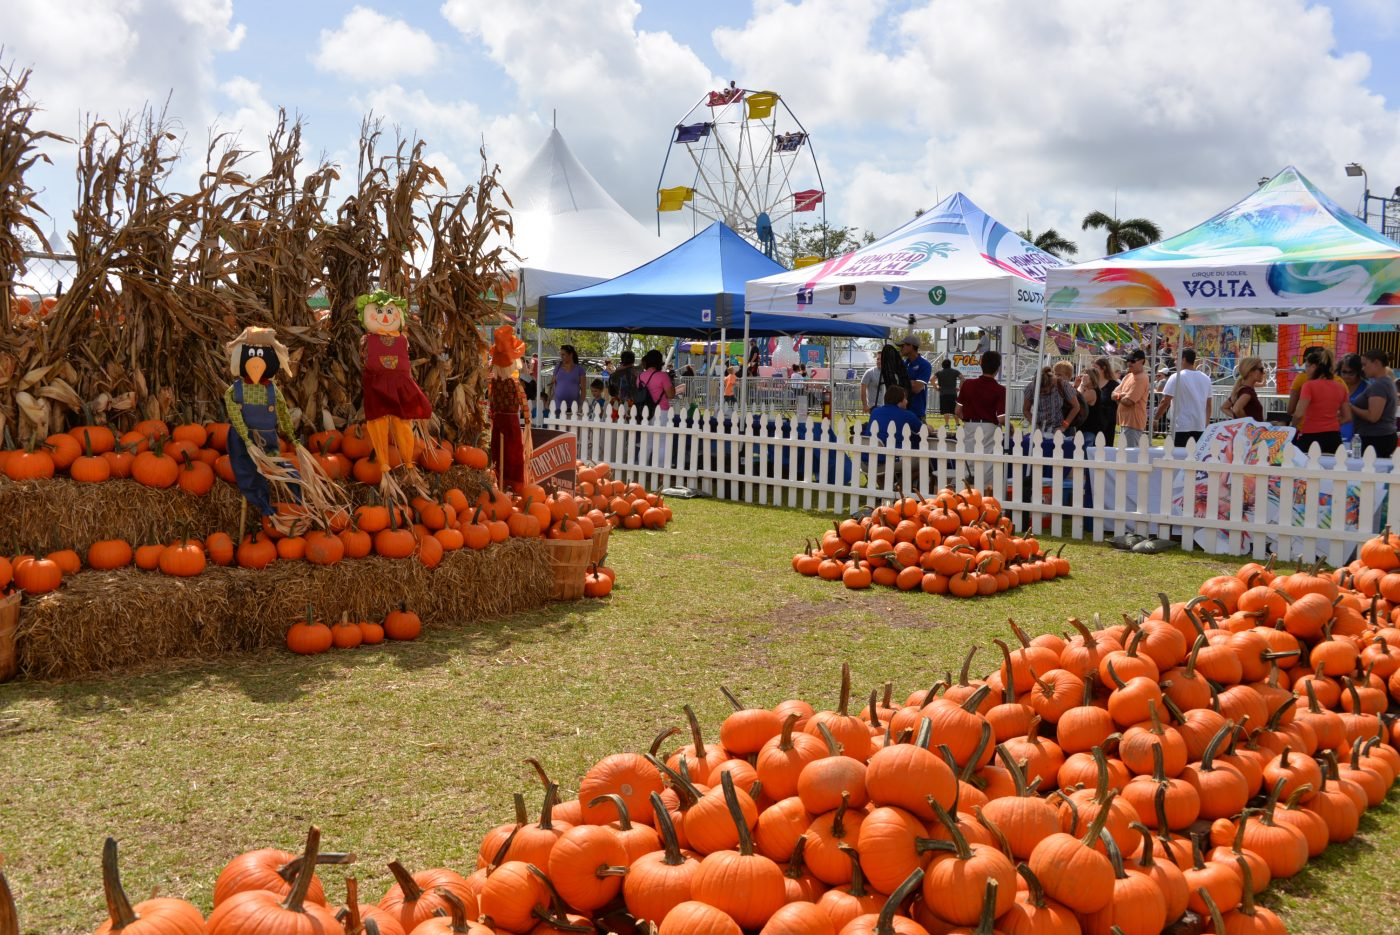 octobre coconut grove pumpkin patch festival que faire en octobre a miami attractions a miami bons plans miami bons plans floride tarifs réduits miami blog miami off road